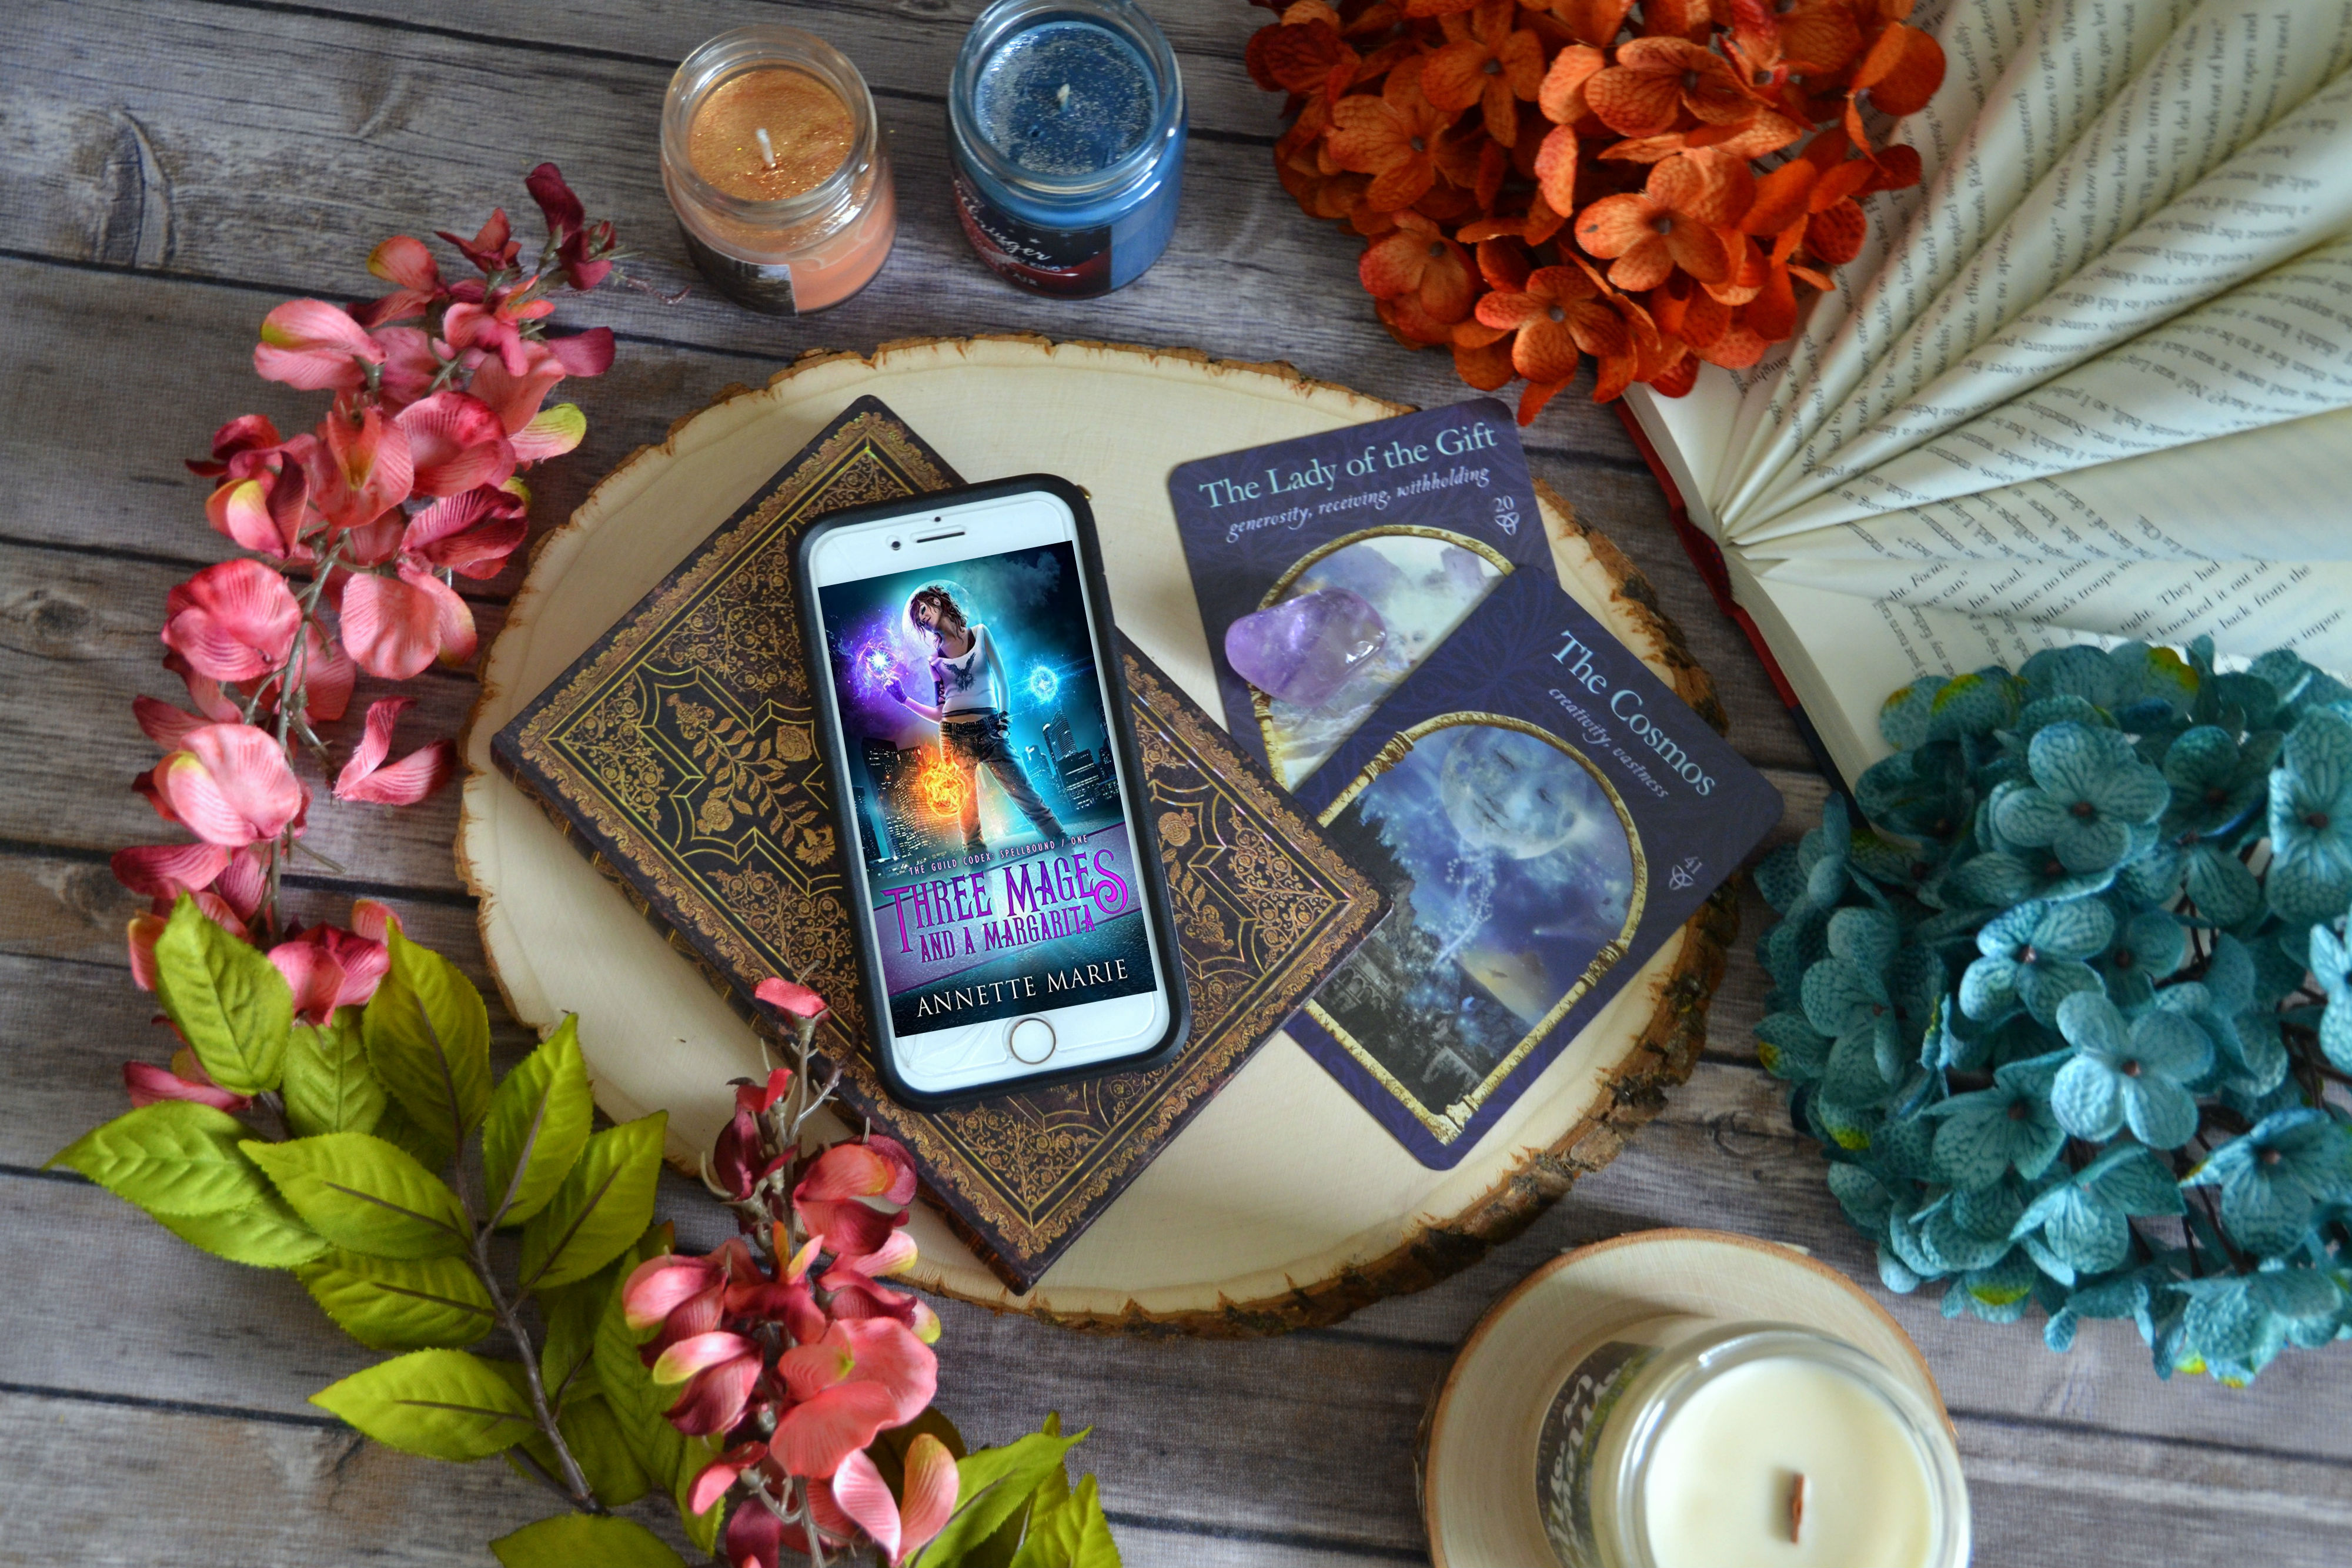 Three Mages and a Margarita by Annette Marie   ARC Review